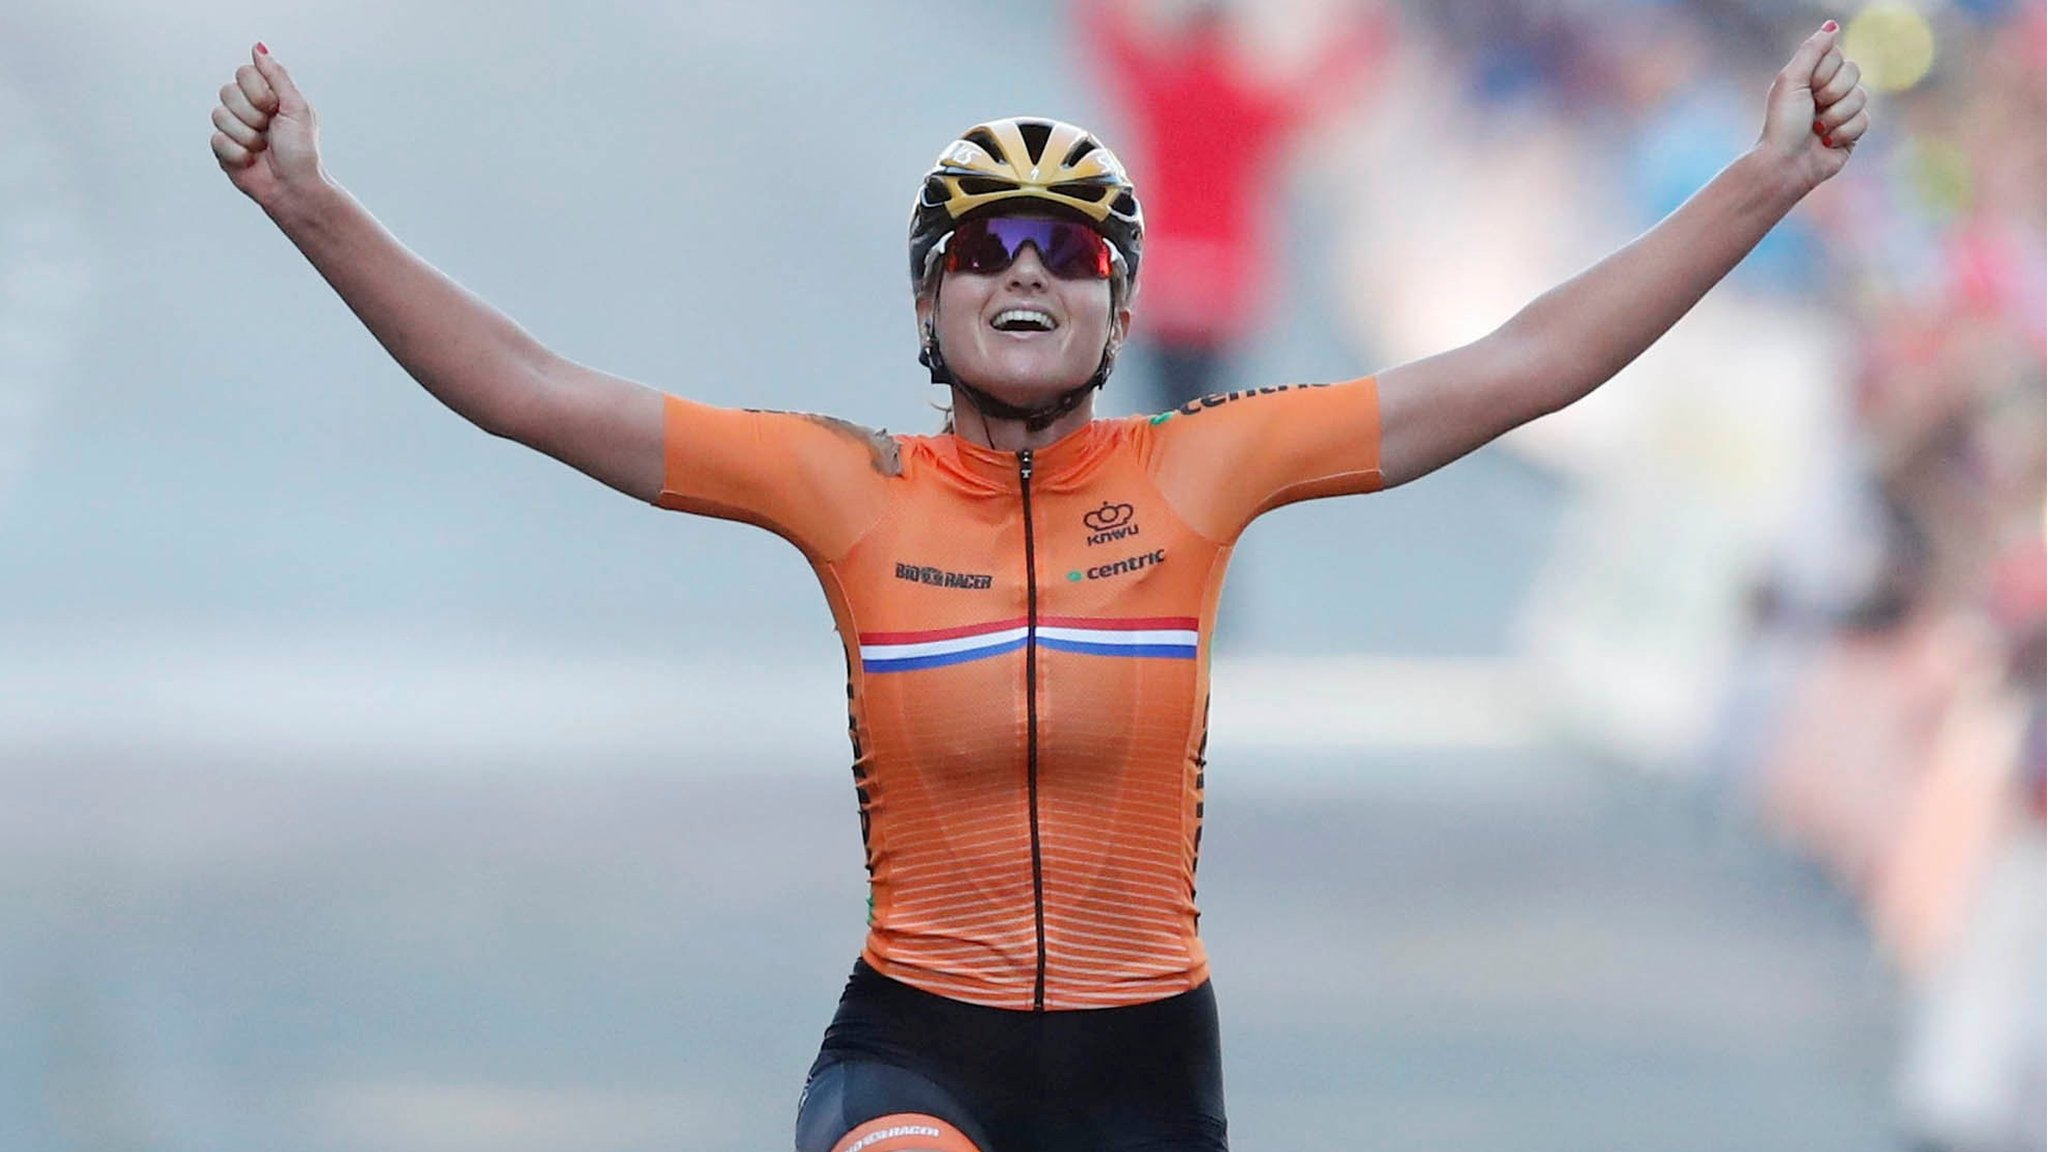 Road World Championships: Chantal Blaak wins women's road race in Norway